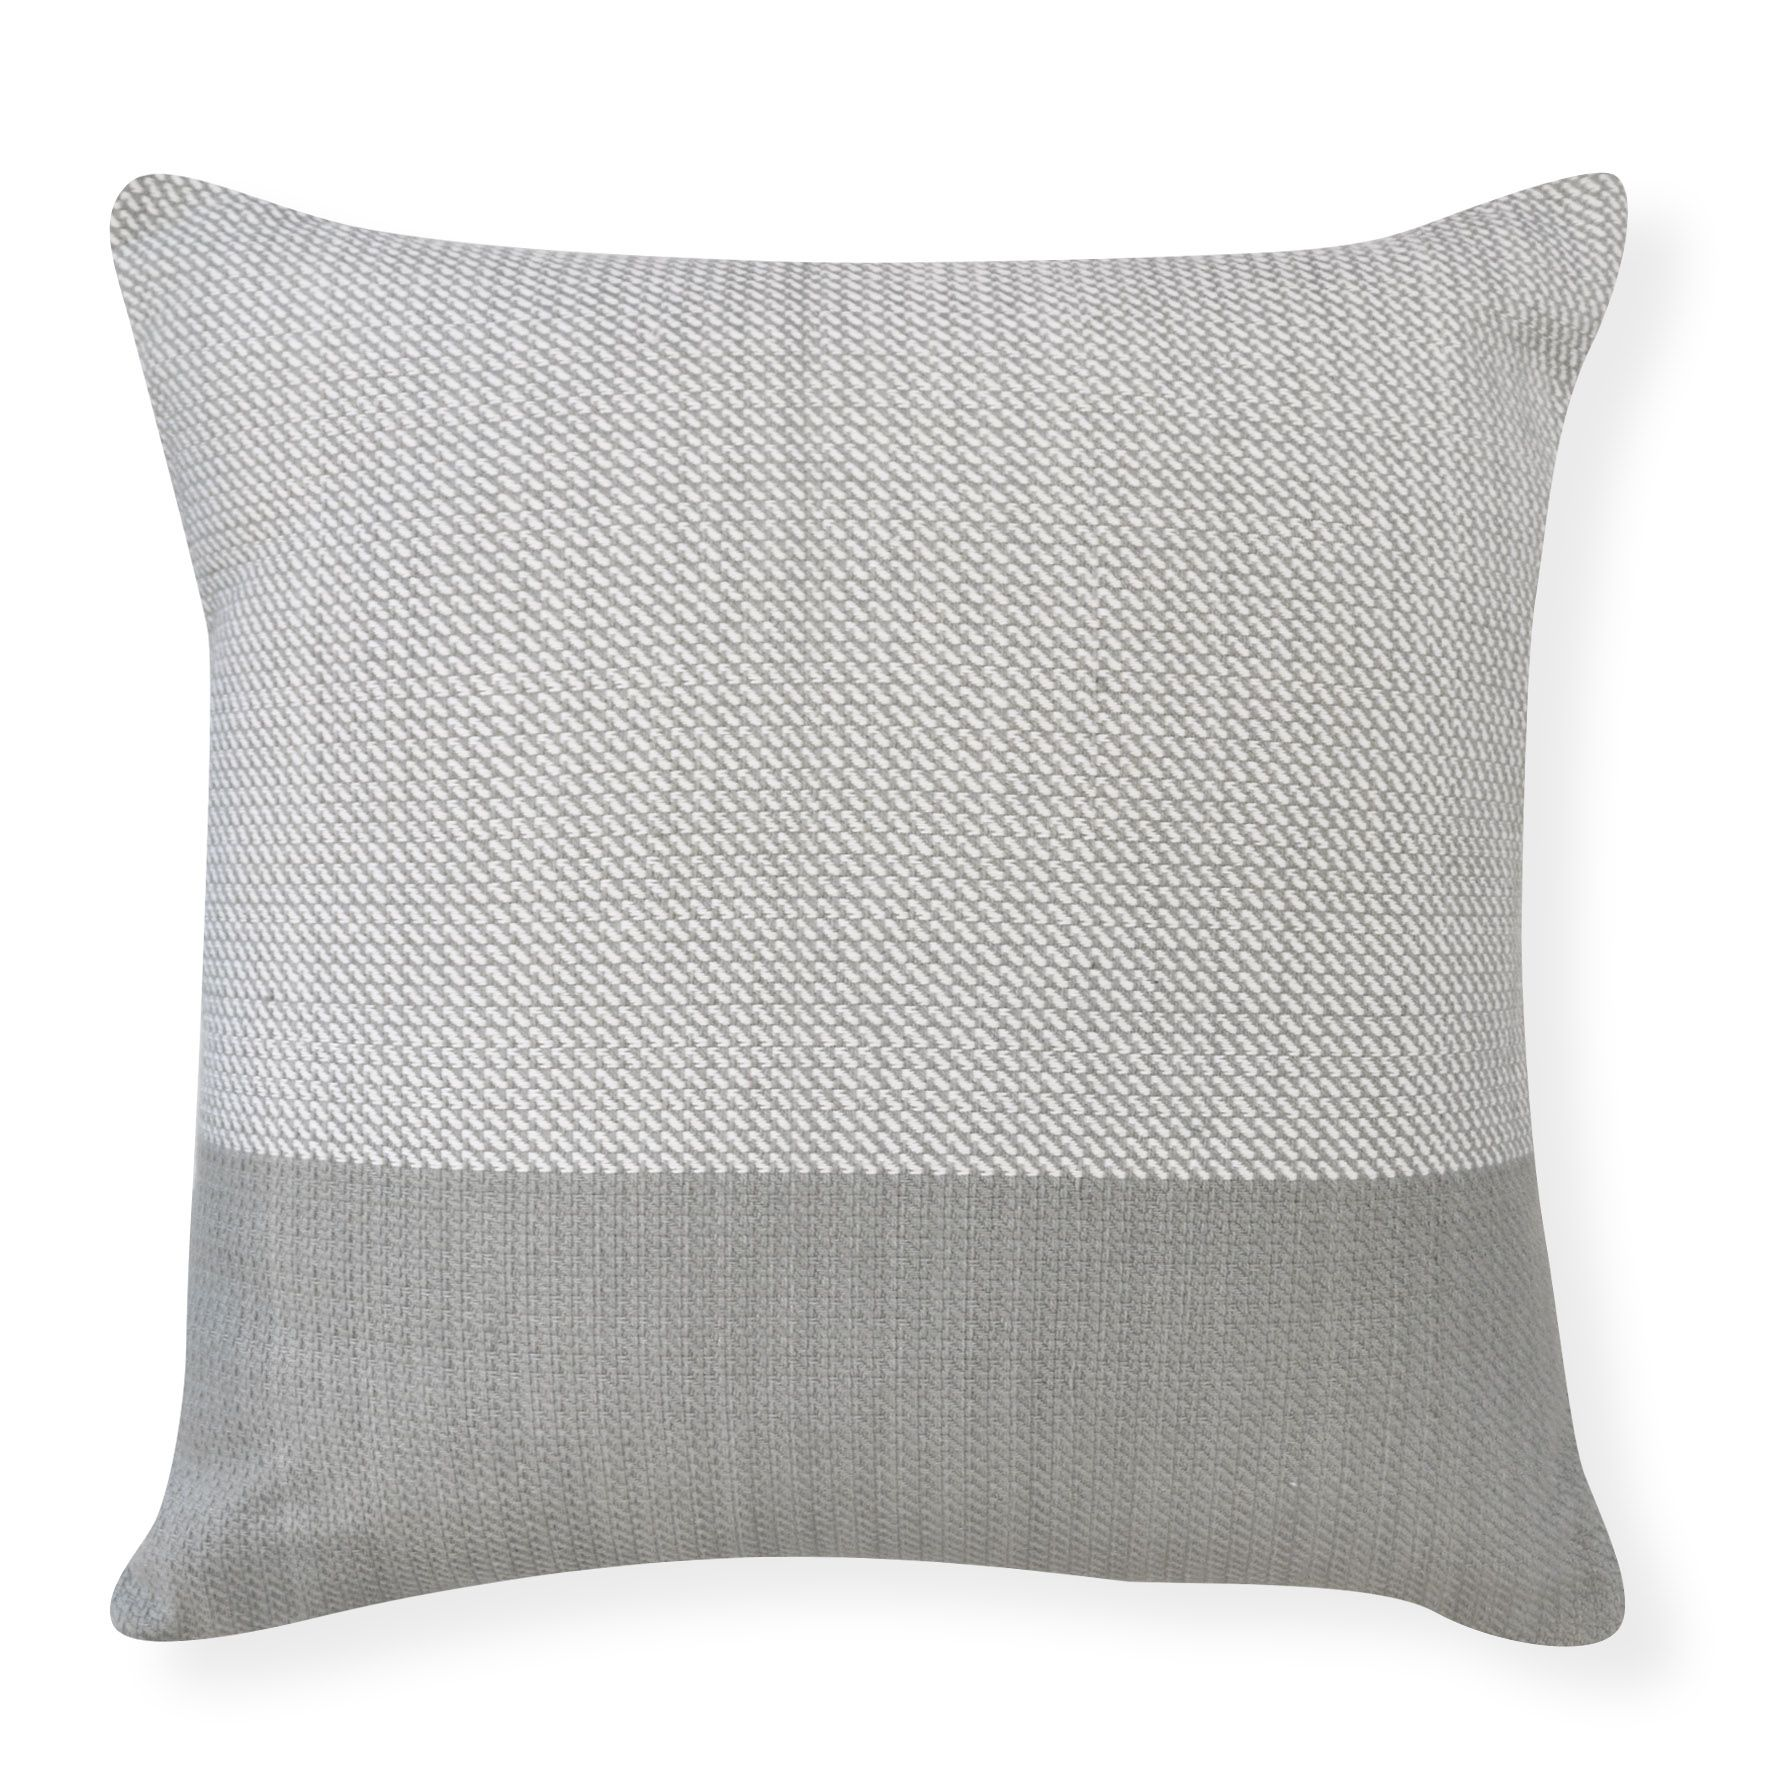 NORWAY GREY CUSHION